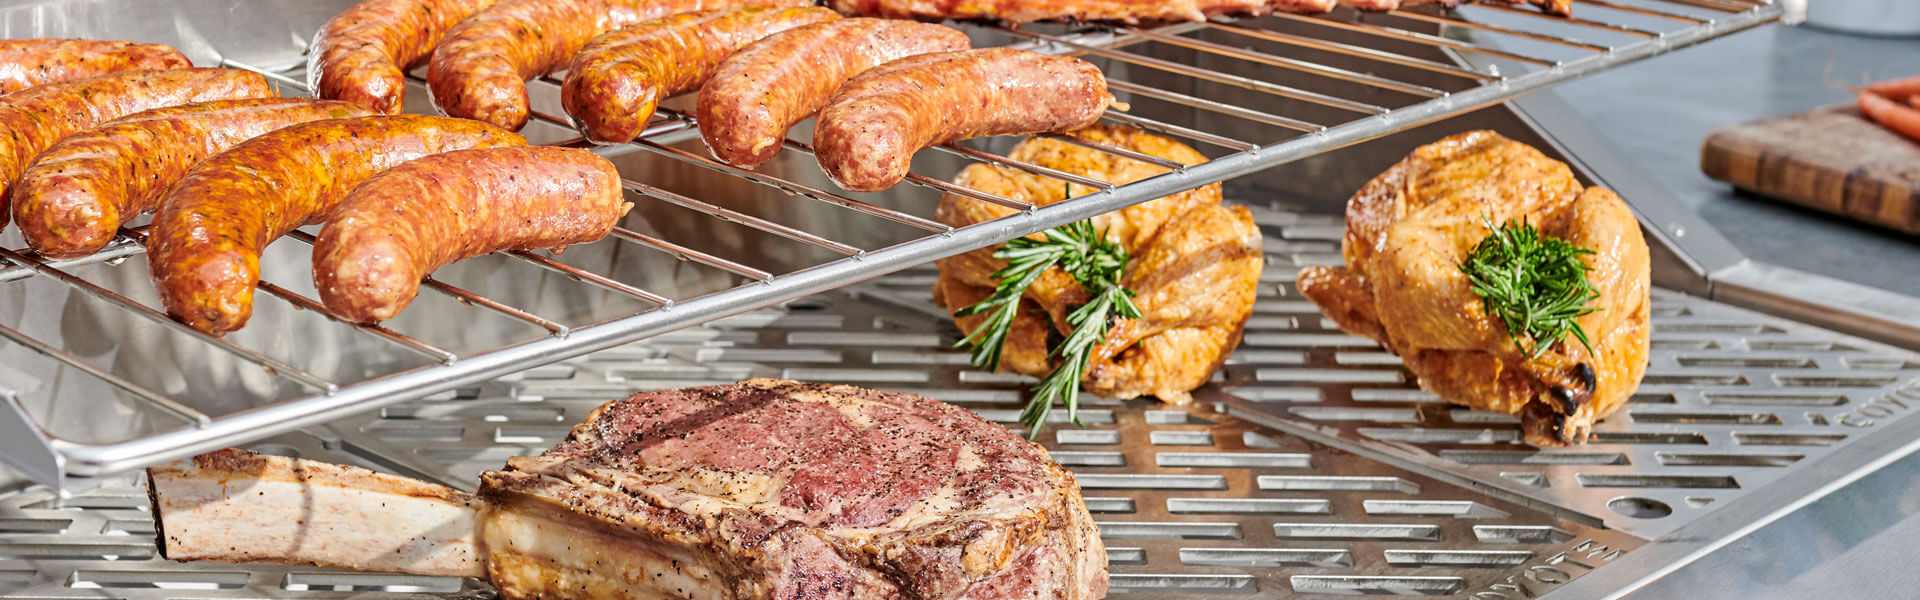 Coyote Outdoor Living Pellet Grill Close-up